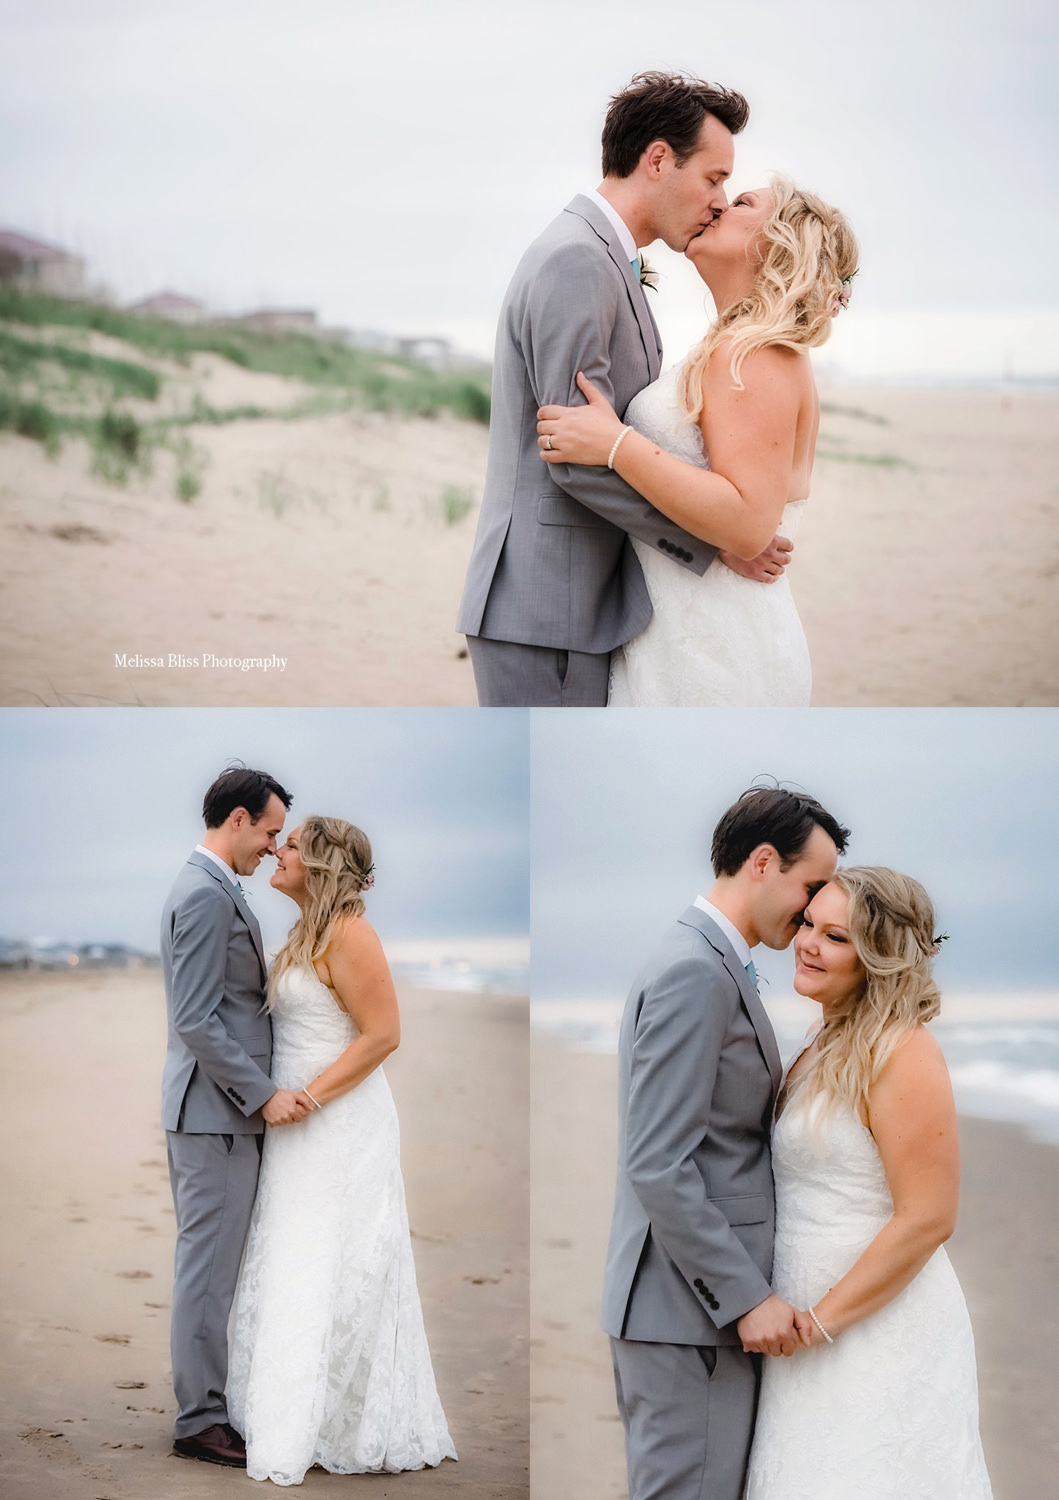 Bride-and-groom-portraits-on-the-beach-Blue-Horizon-Sandbridge-Cottage-Beach-Wedding-Melissa-Bliss-Photography.jpg